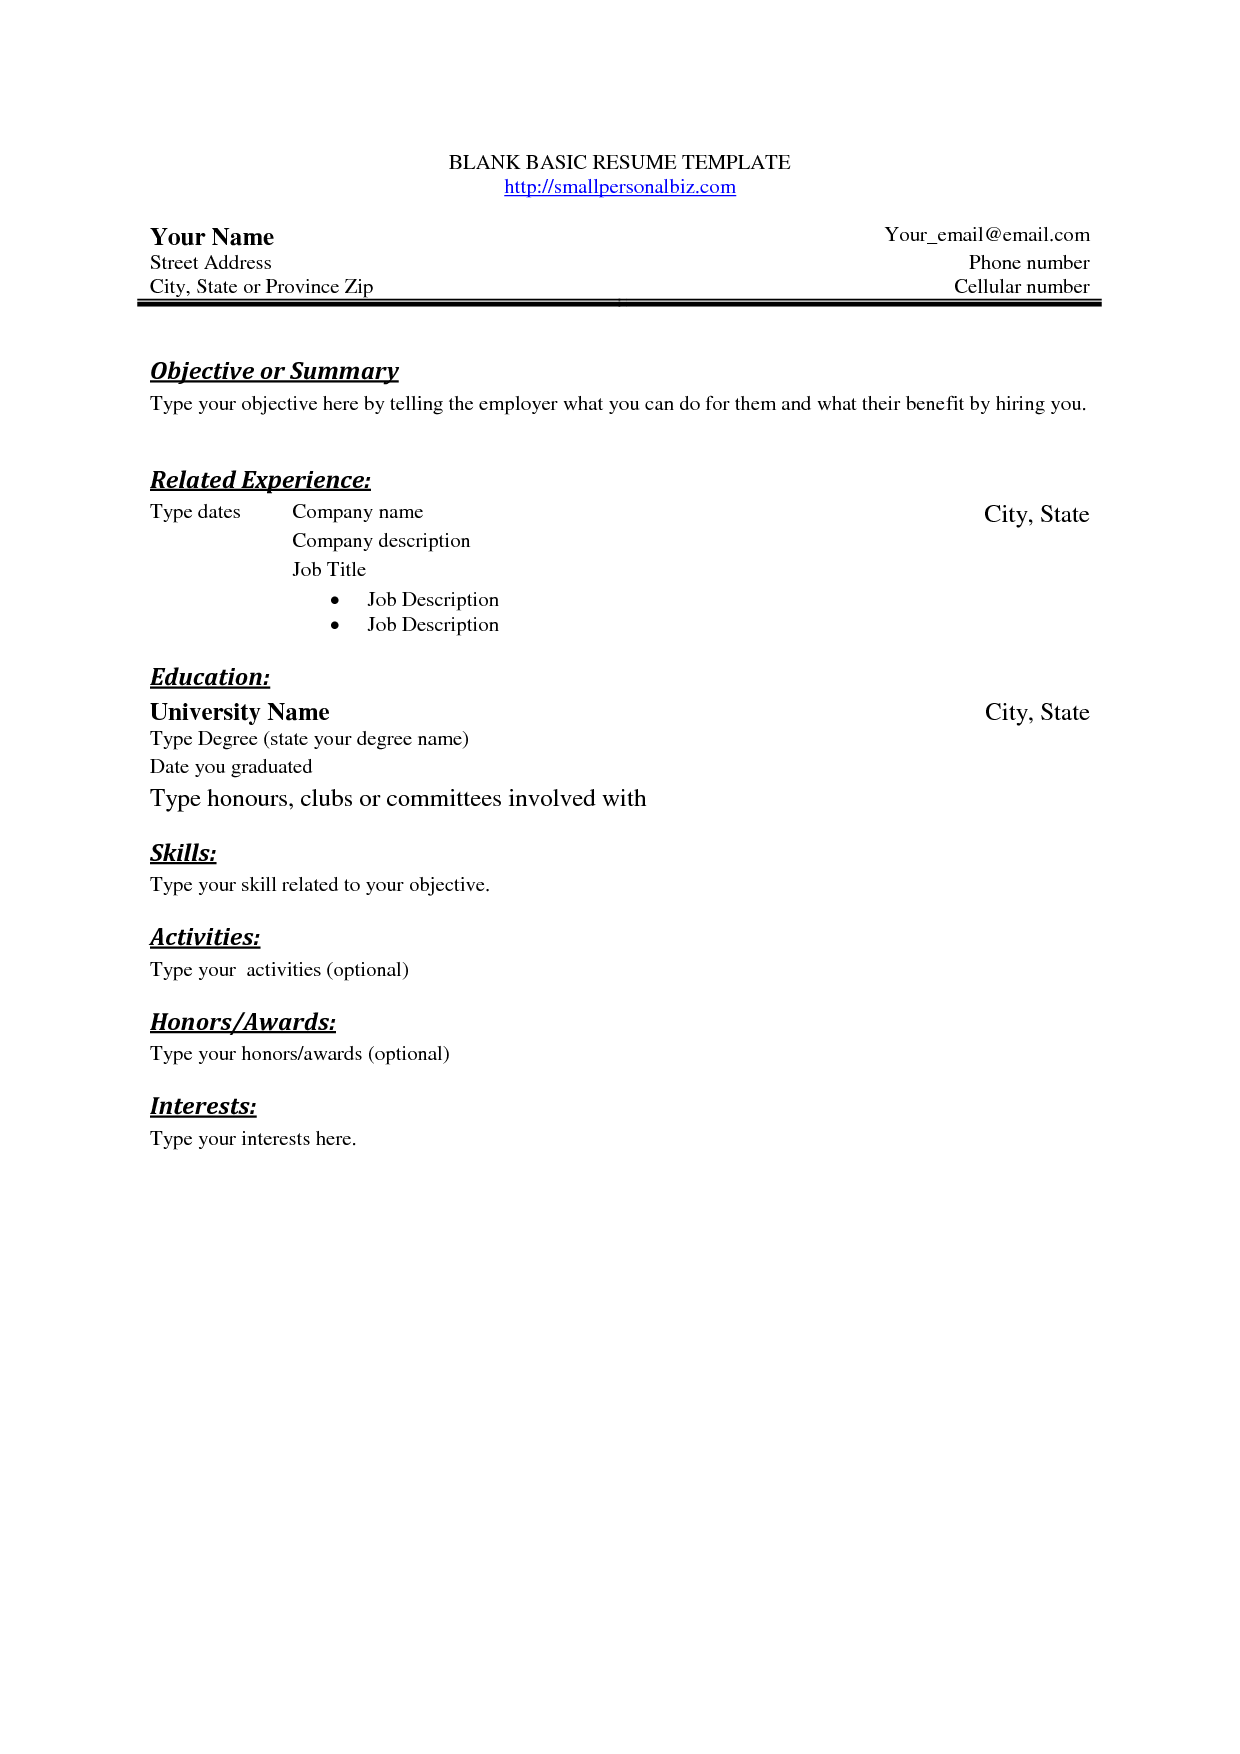 blank job resume template